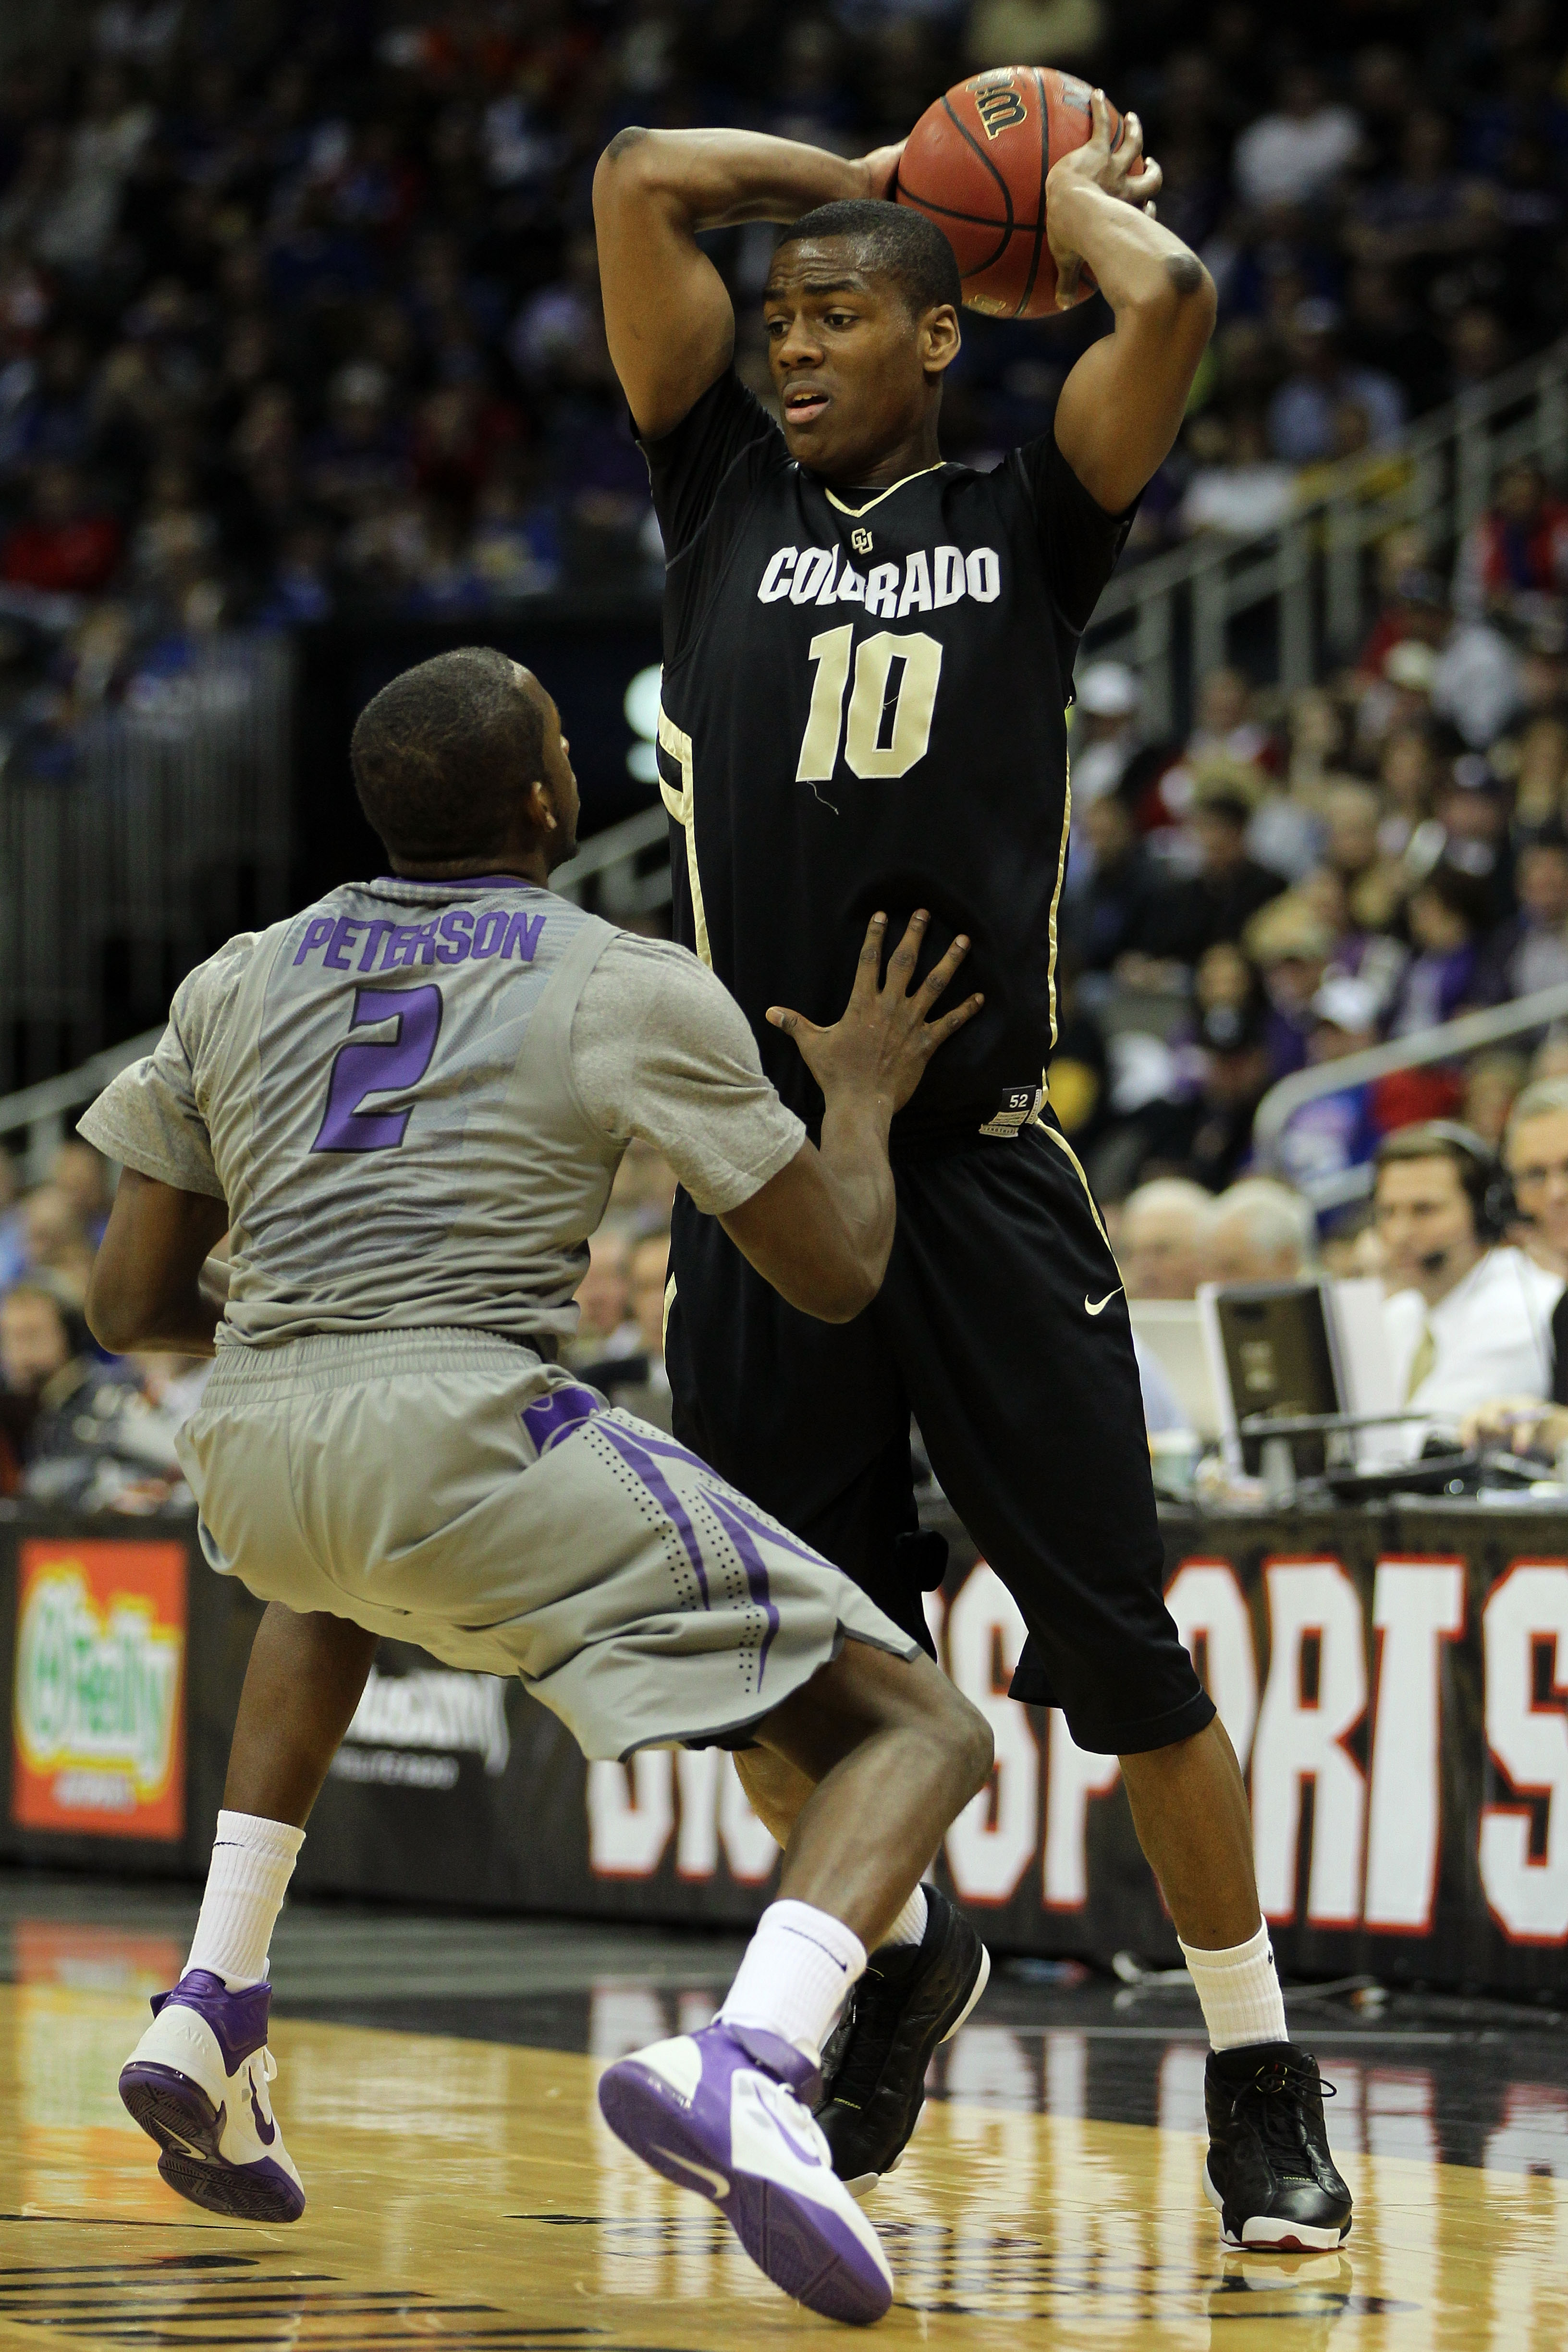 KANSAS CITY, MO - MARCH 10:  Alec Burks #10 of the Colorado Buffaloes looks to move the ball as Devon Peterson #2 of the Kansas State Wildcats defends during their quarterfinal game in the 2011 Phillips 66 Big 12 Men's Basketball Tournament at Sprint Cent